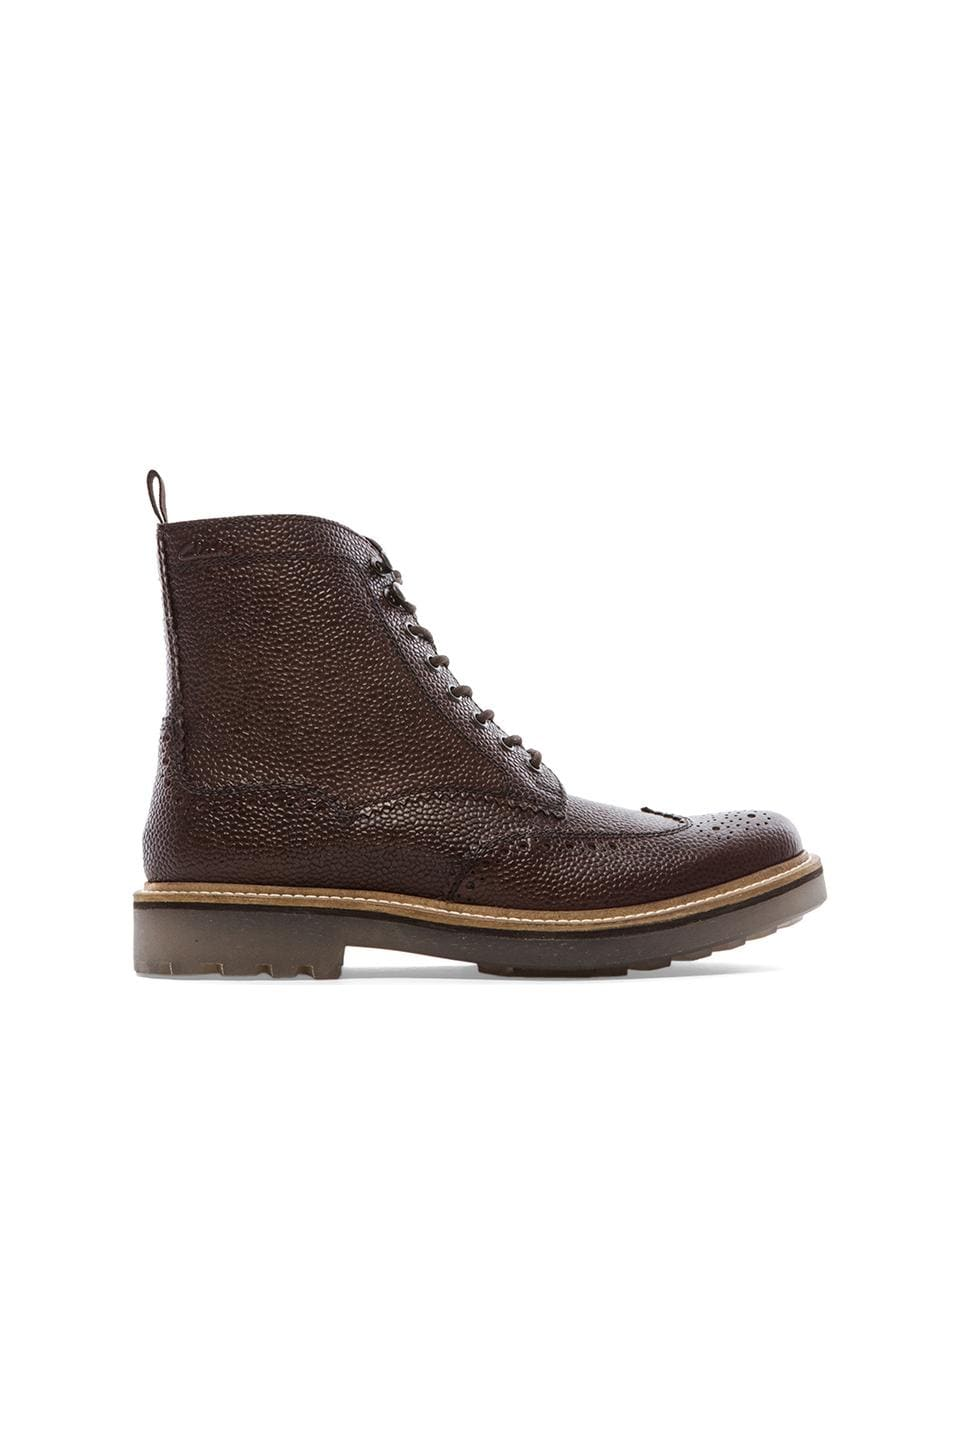 Clarks Monmart Rise in Dark Brown Leather